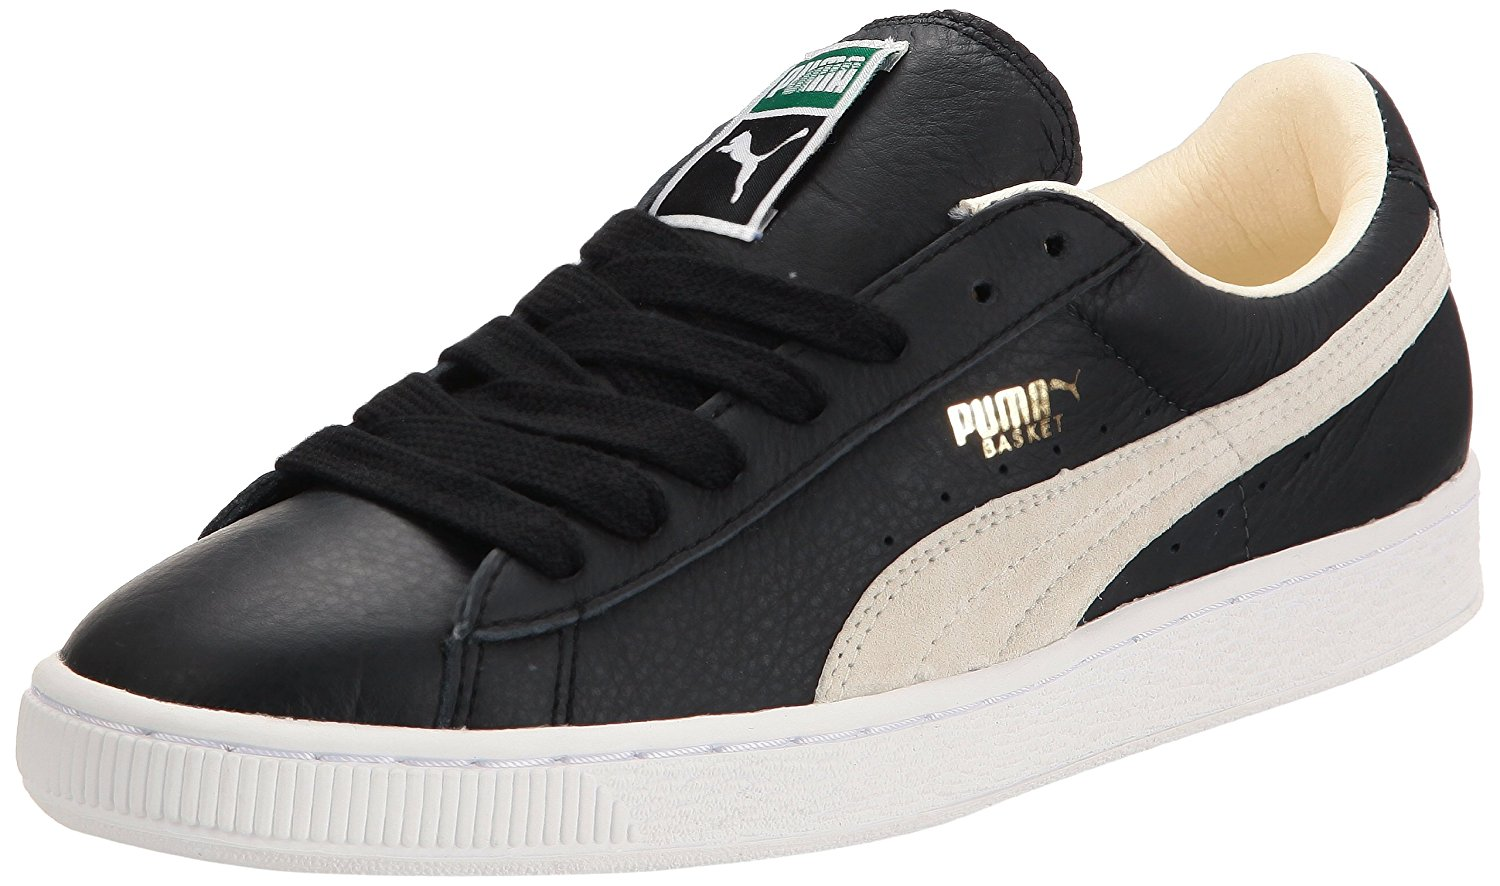 dff0a76c4e Cheap Basket Puma Homme, find Basket Puma Homme deals on line at ...